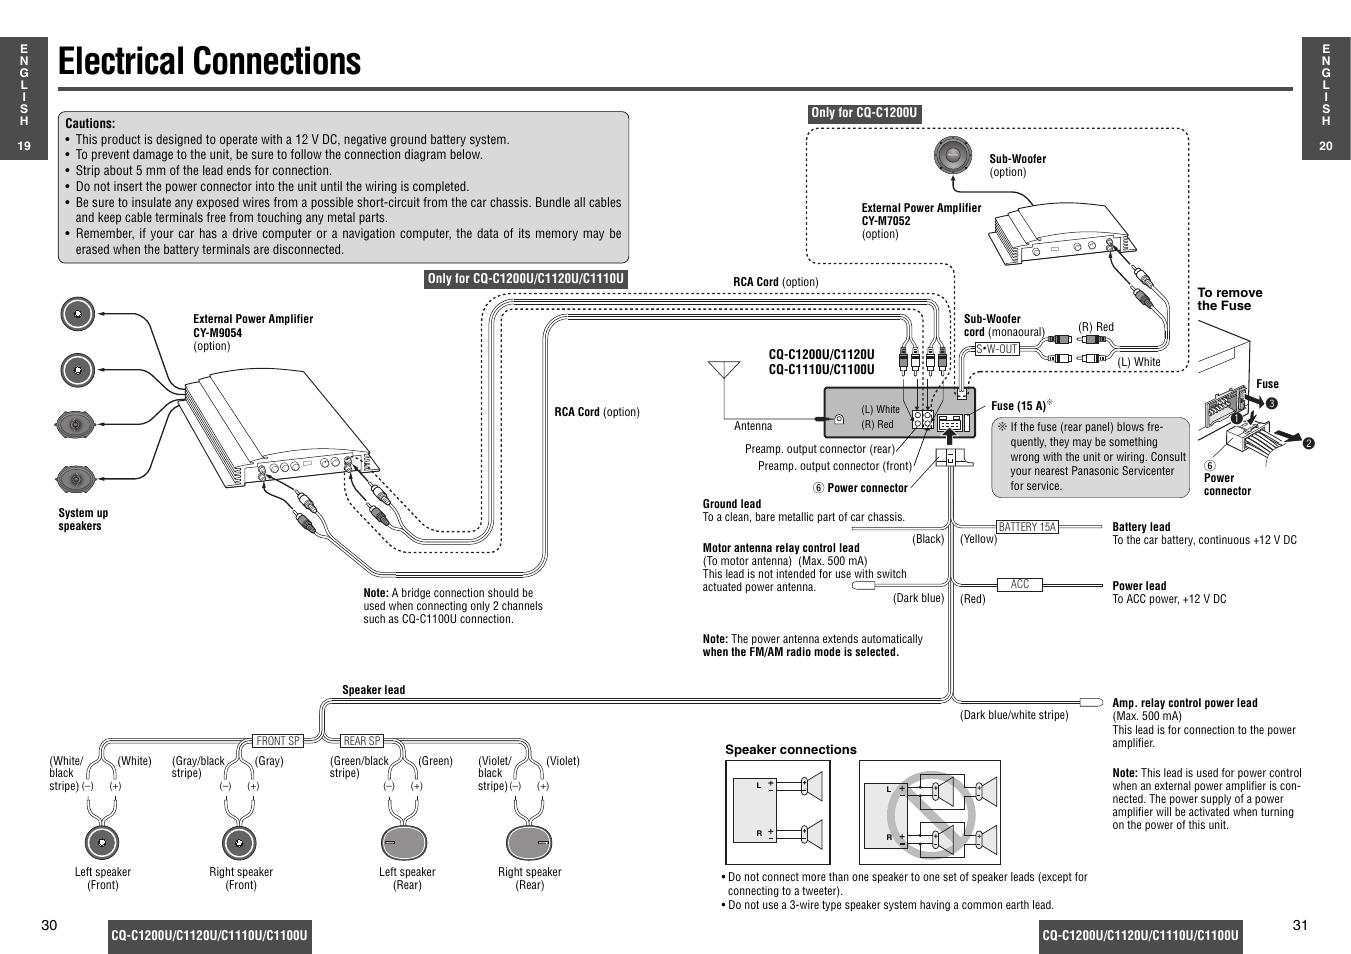 panasonic cq c1200u page16 electrical connections panasonic cq c1200u manuel d'utilisation panasonic cq c1100u wiring diagram at edmiracle.co